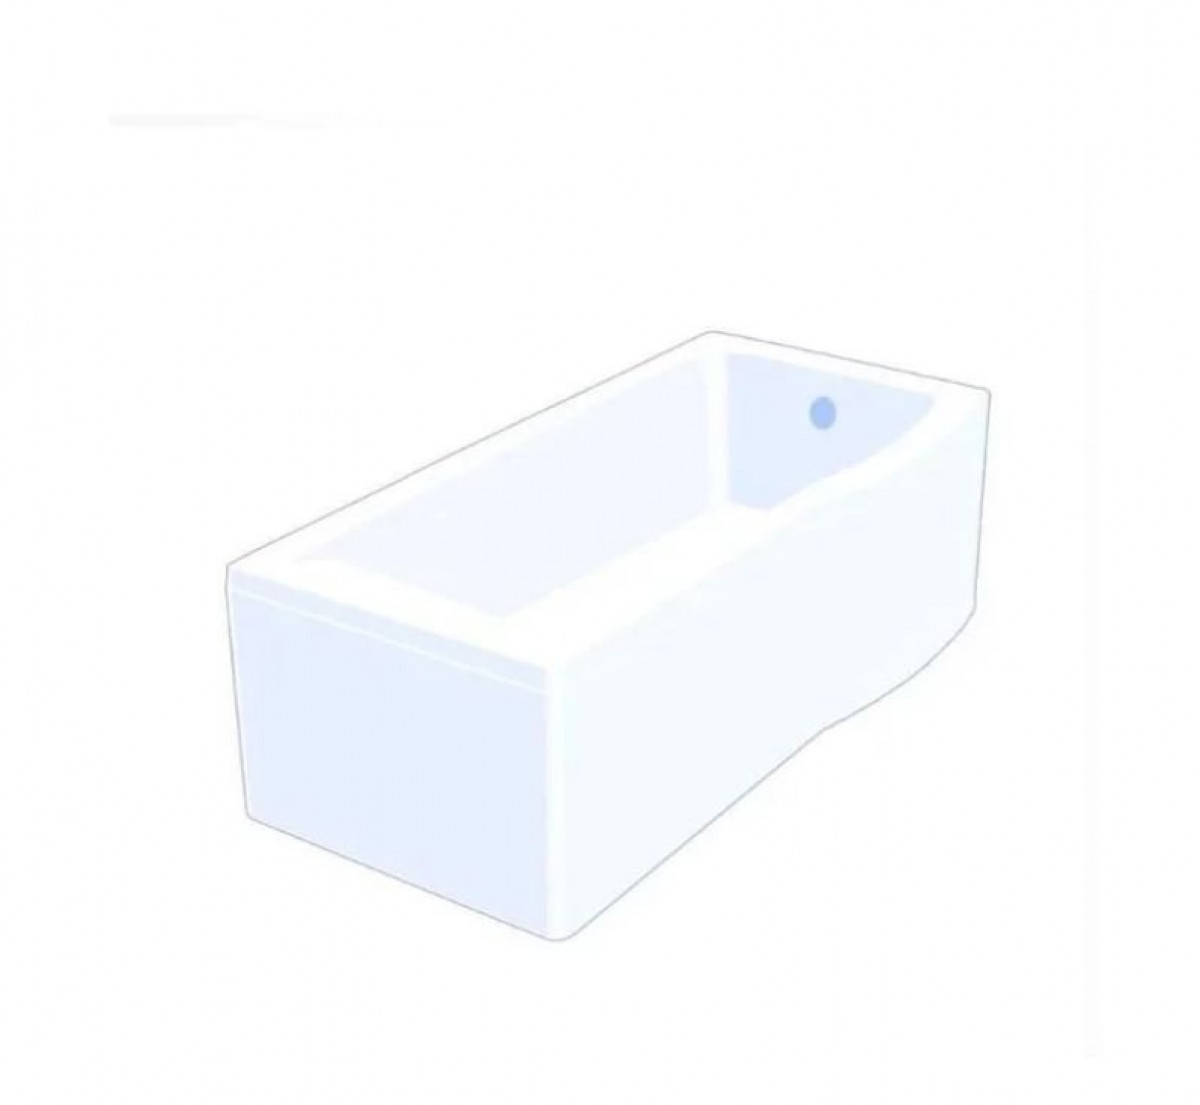 Standard Tub Size And Other Important Aspects Of The Bathroom: Carron Aspect 1700 X 700 Right Hand Shower Bath